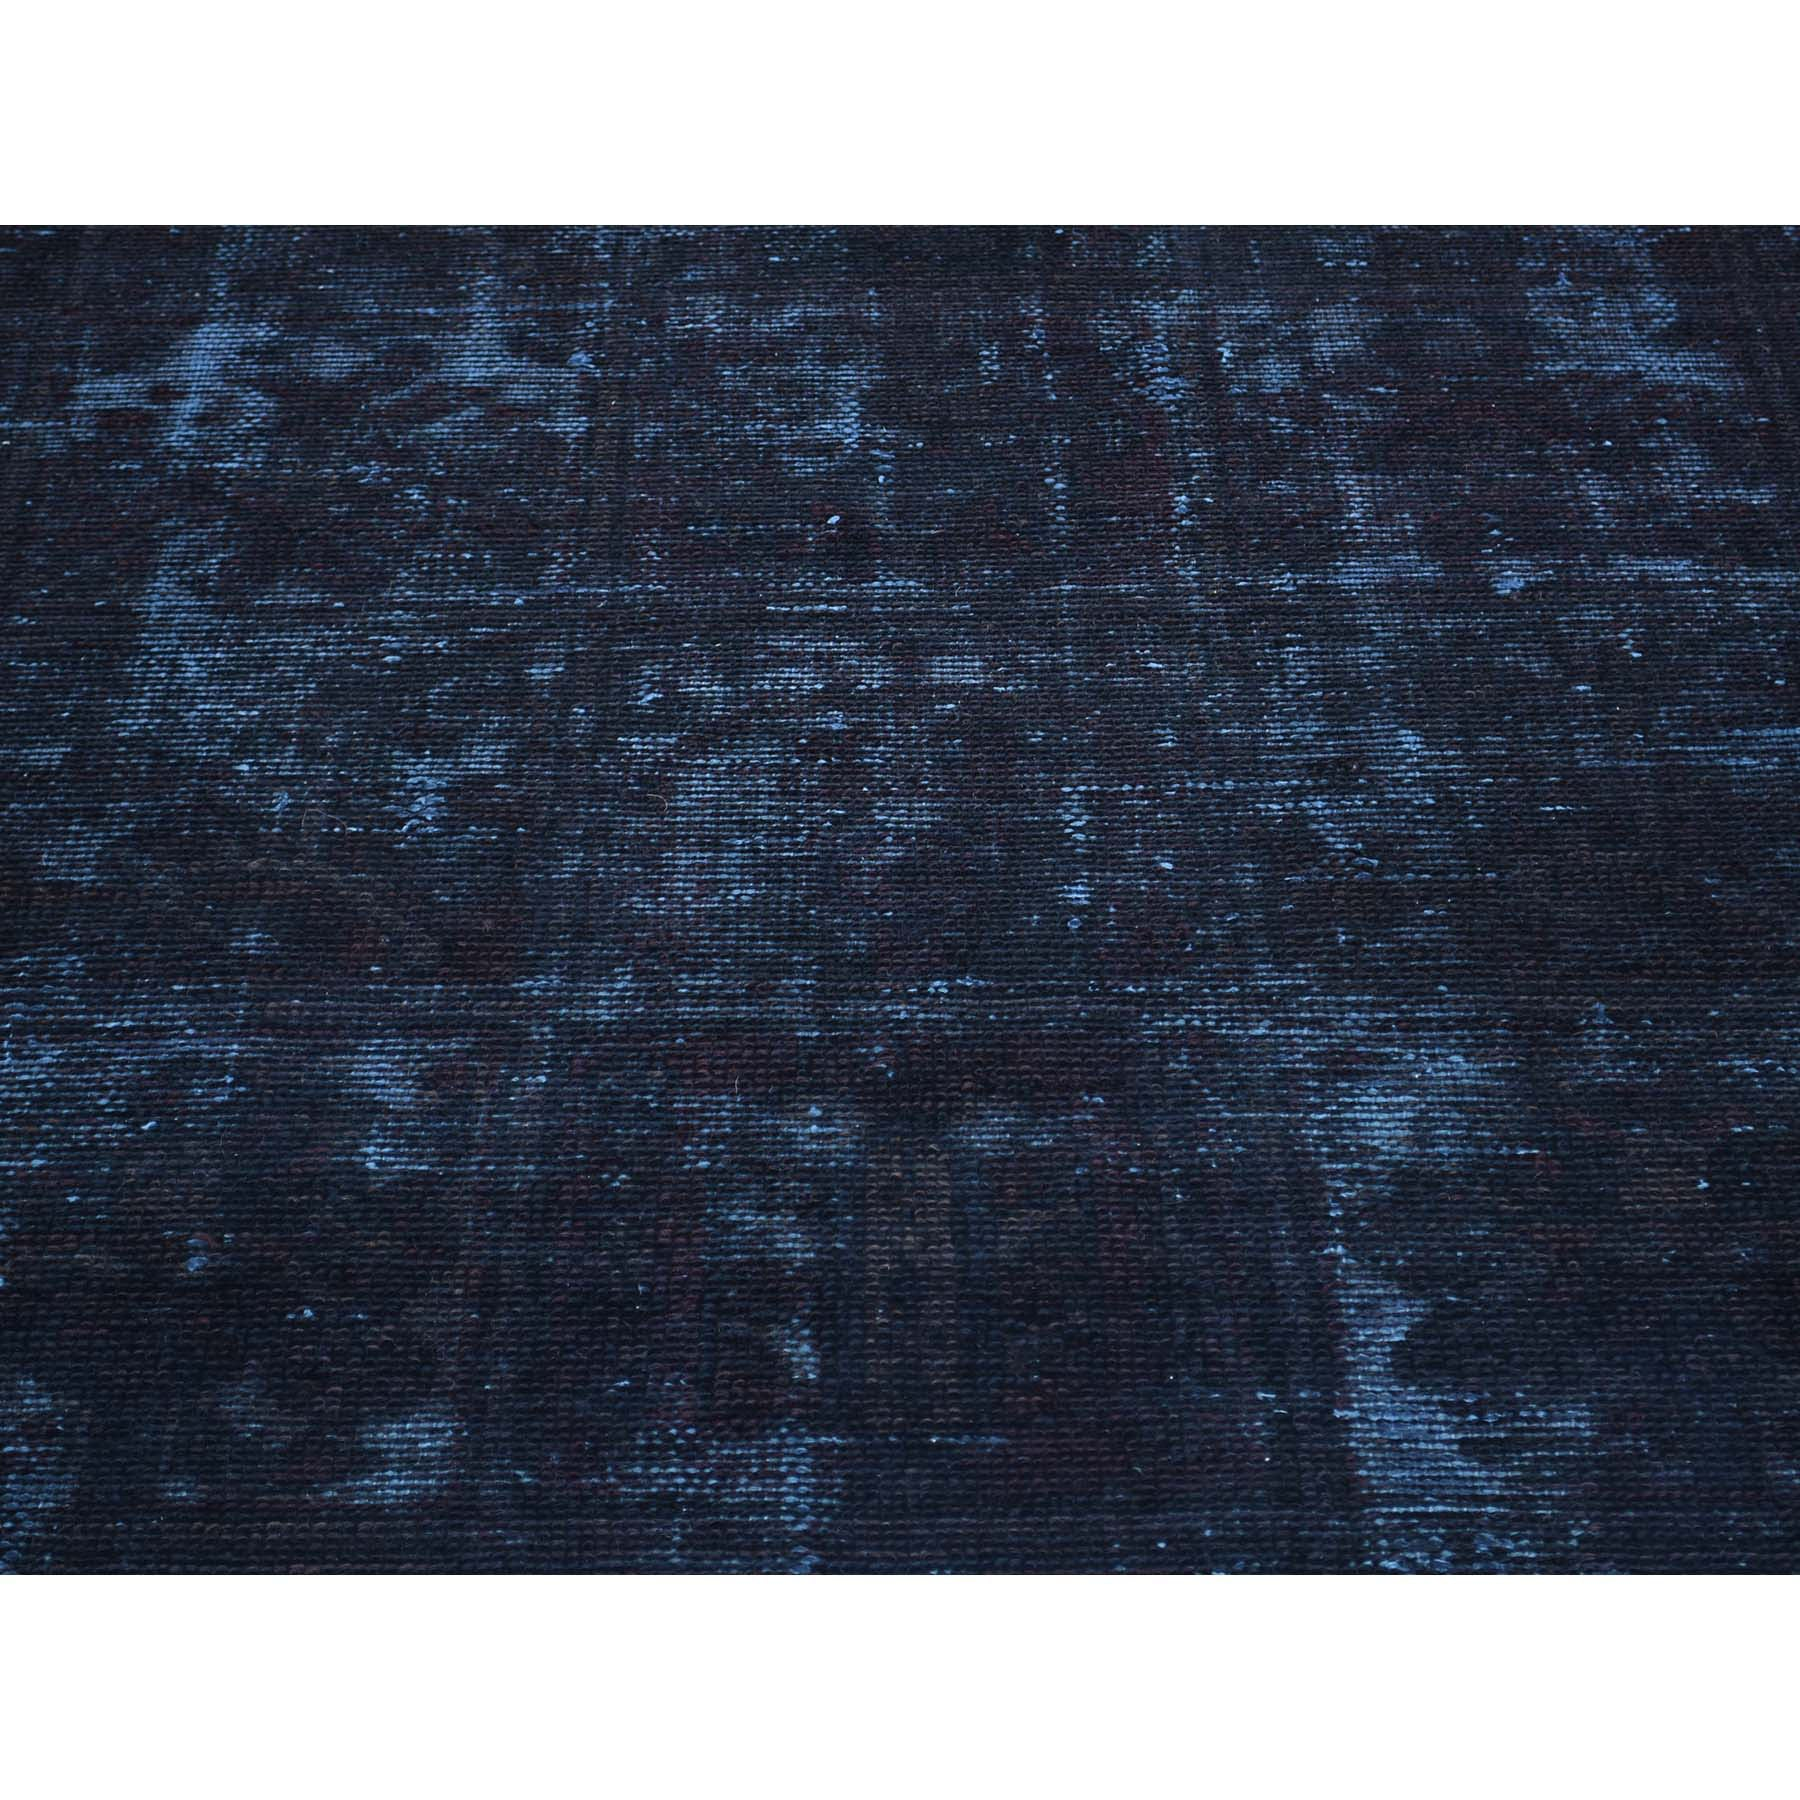 "Handmade Overdyed & Vintage Rectangle Rug > Design# SH30471 > Size: 6'-10"" x 9'-6"" [ONLINE ONLY]"